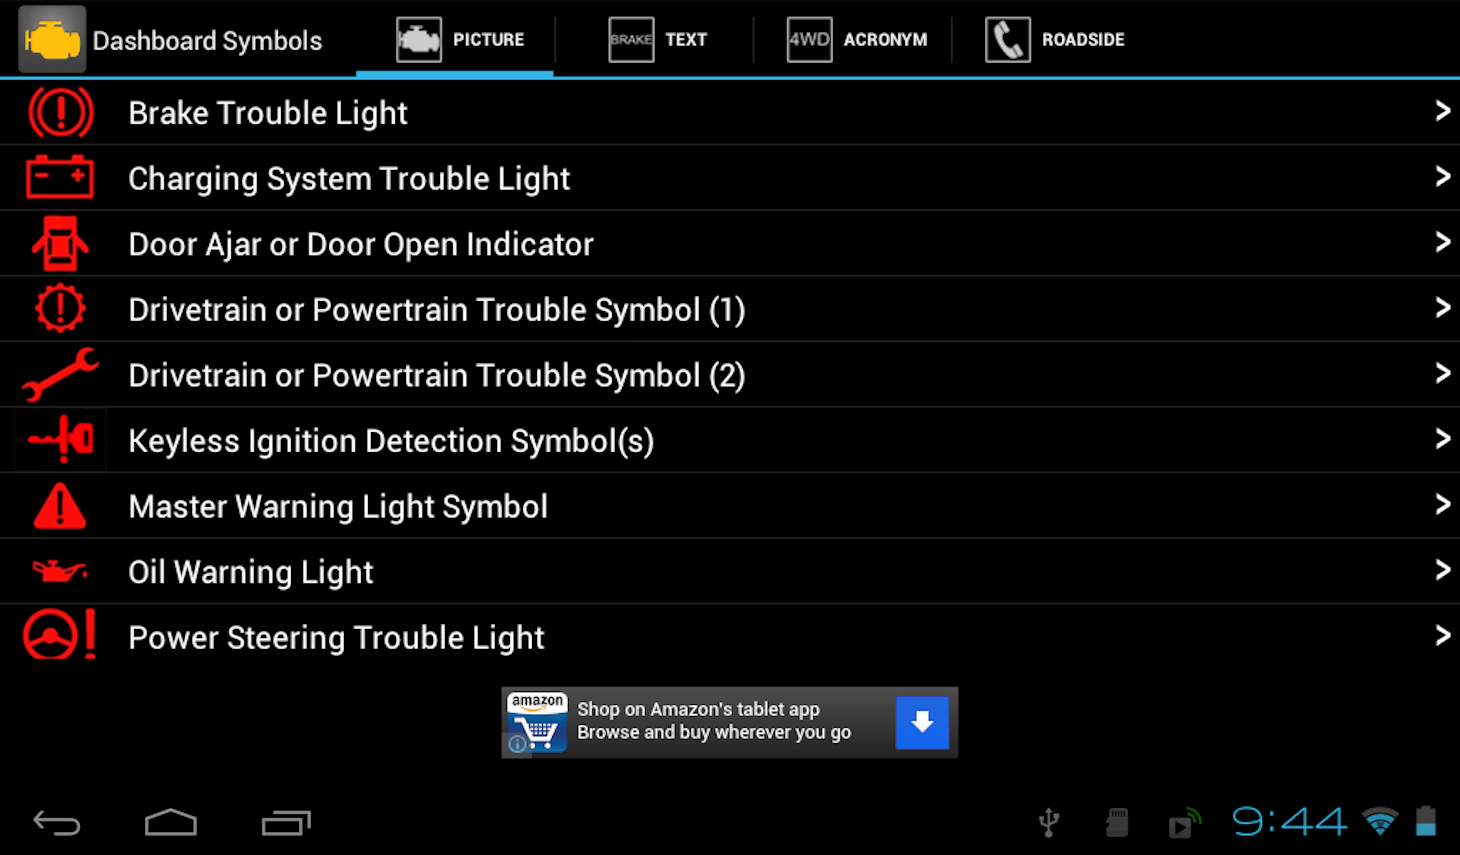 Vehicle Dashboard Symbols Android Apps On Google Play - Car sign on dashboard